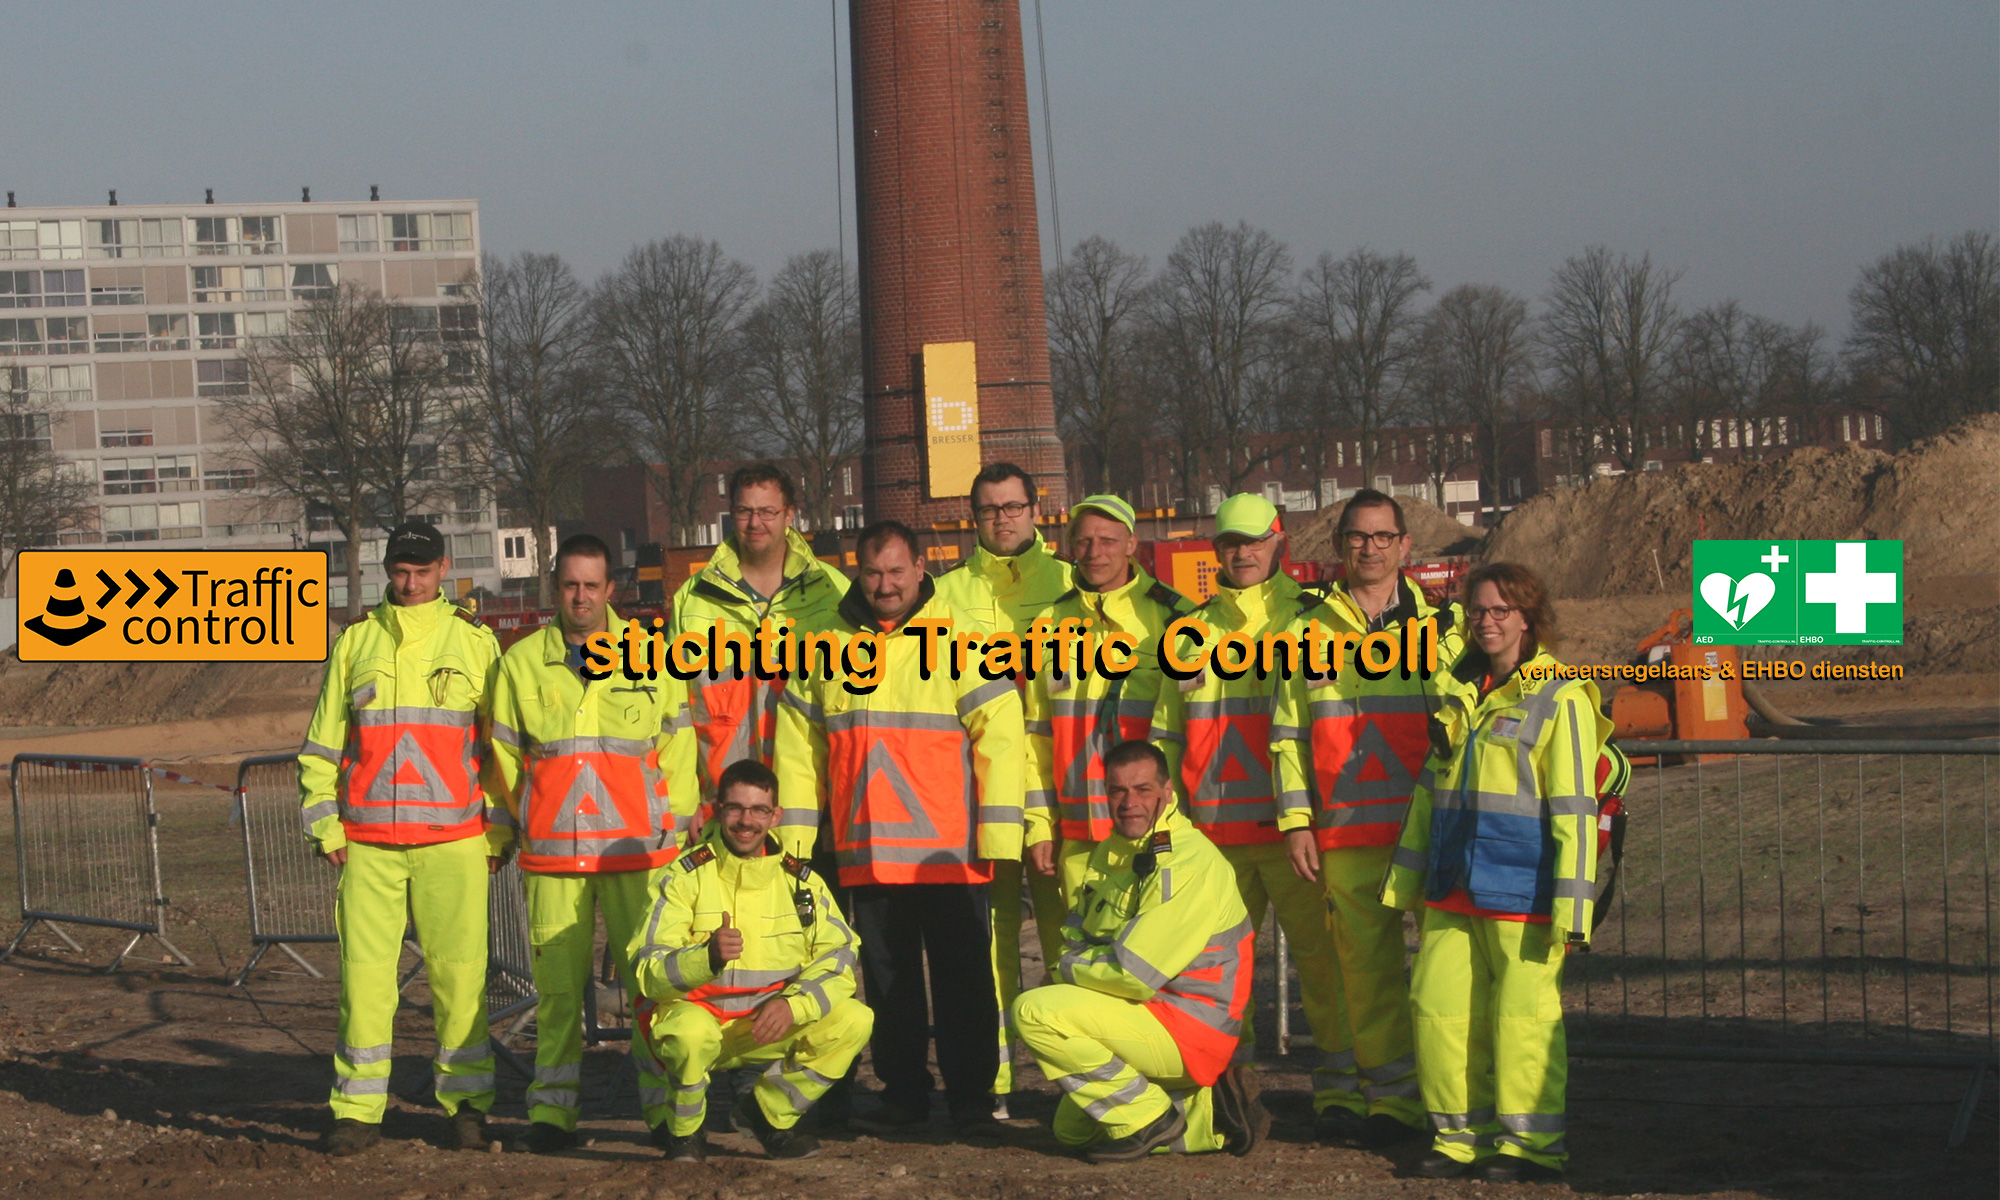 stichting Traffic Controll